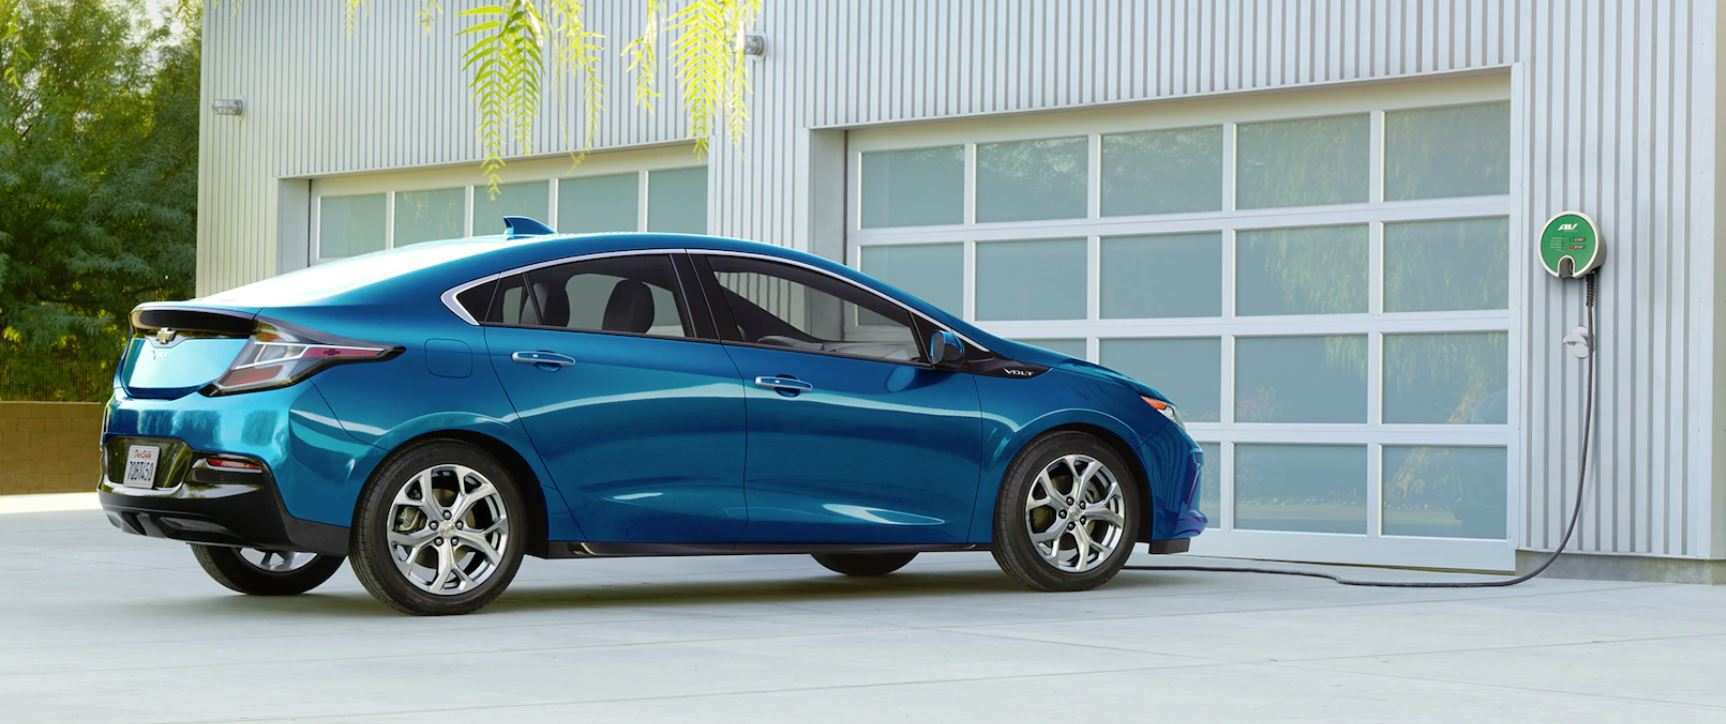 96 Best 2019 Chevrolet Volt Redesign And Concept